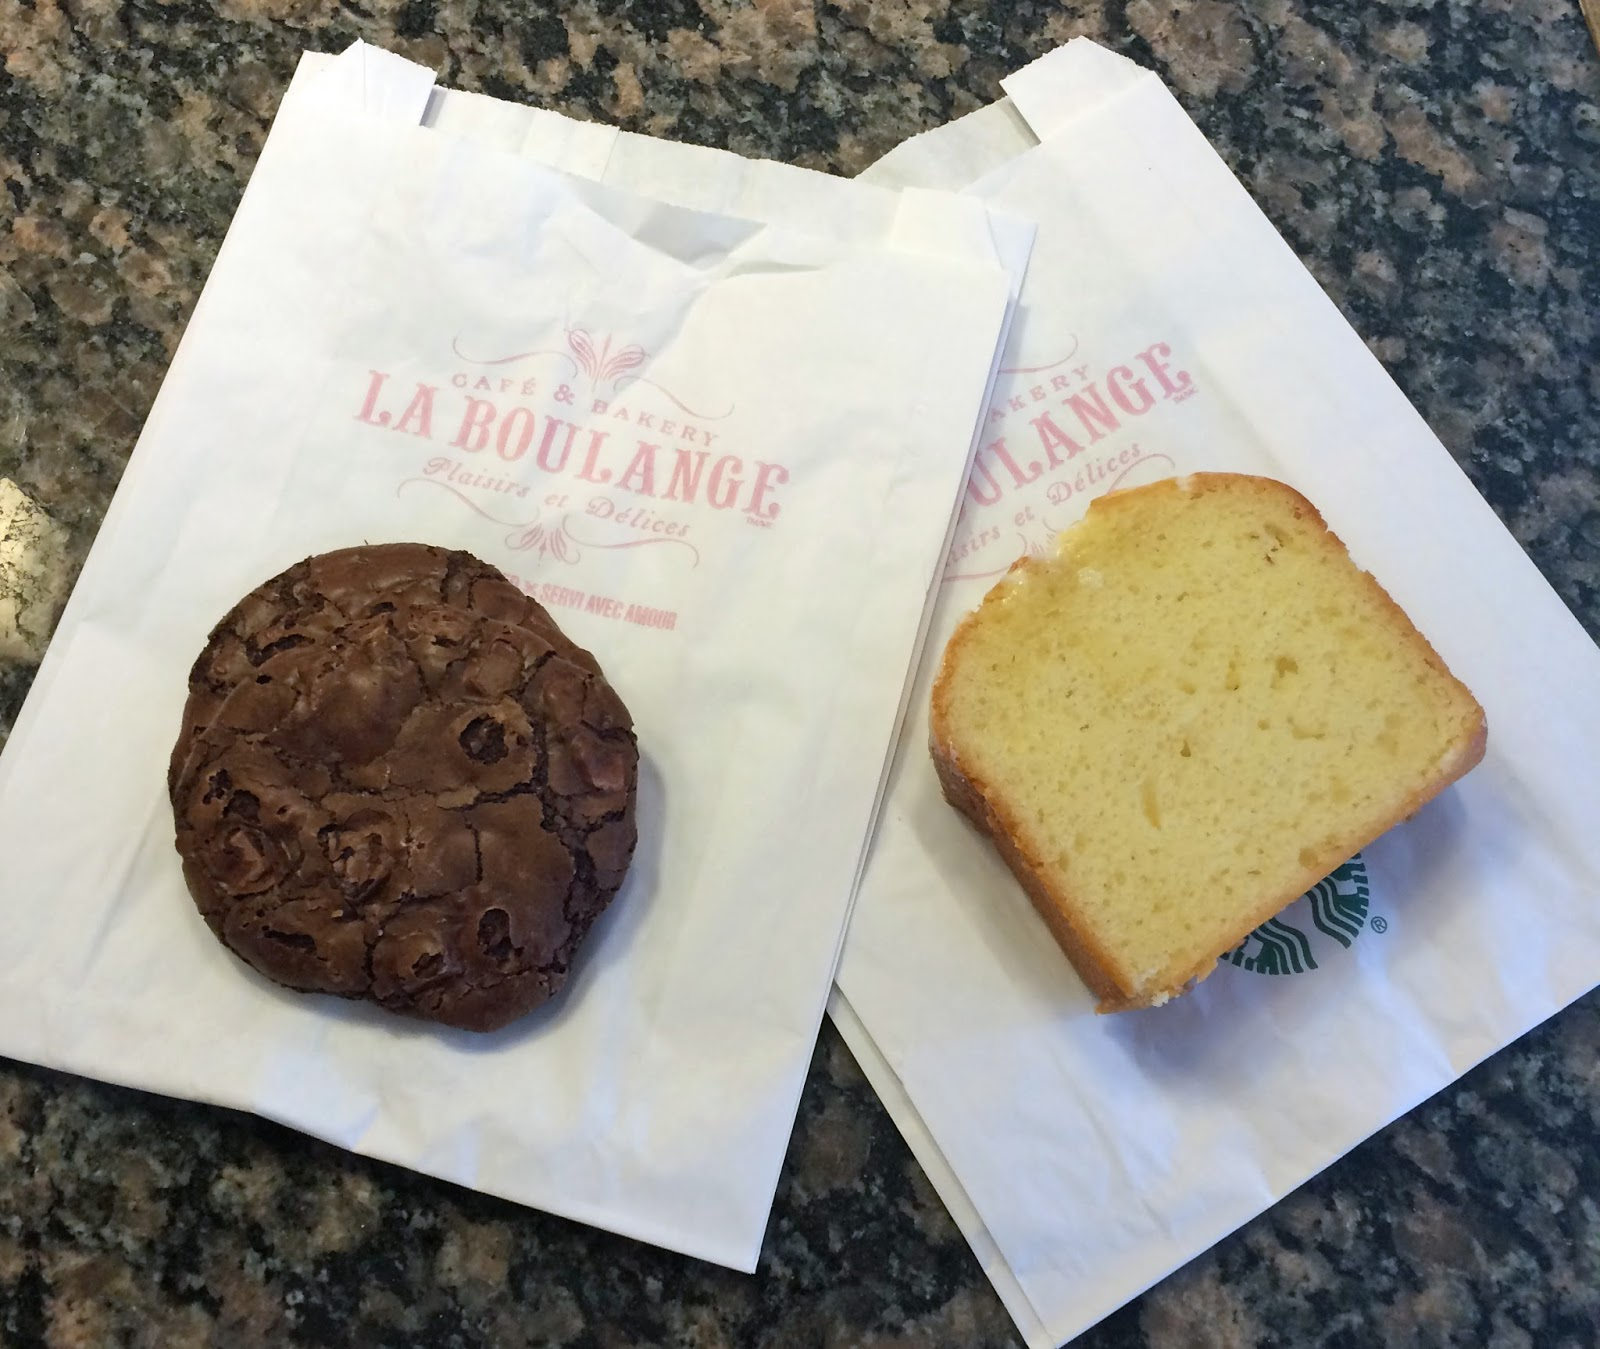 starbucks la boulange bakery canada cookie loaf